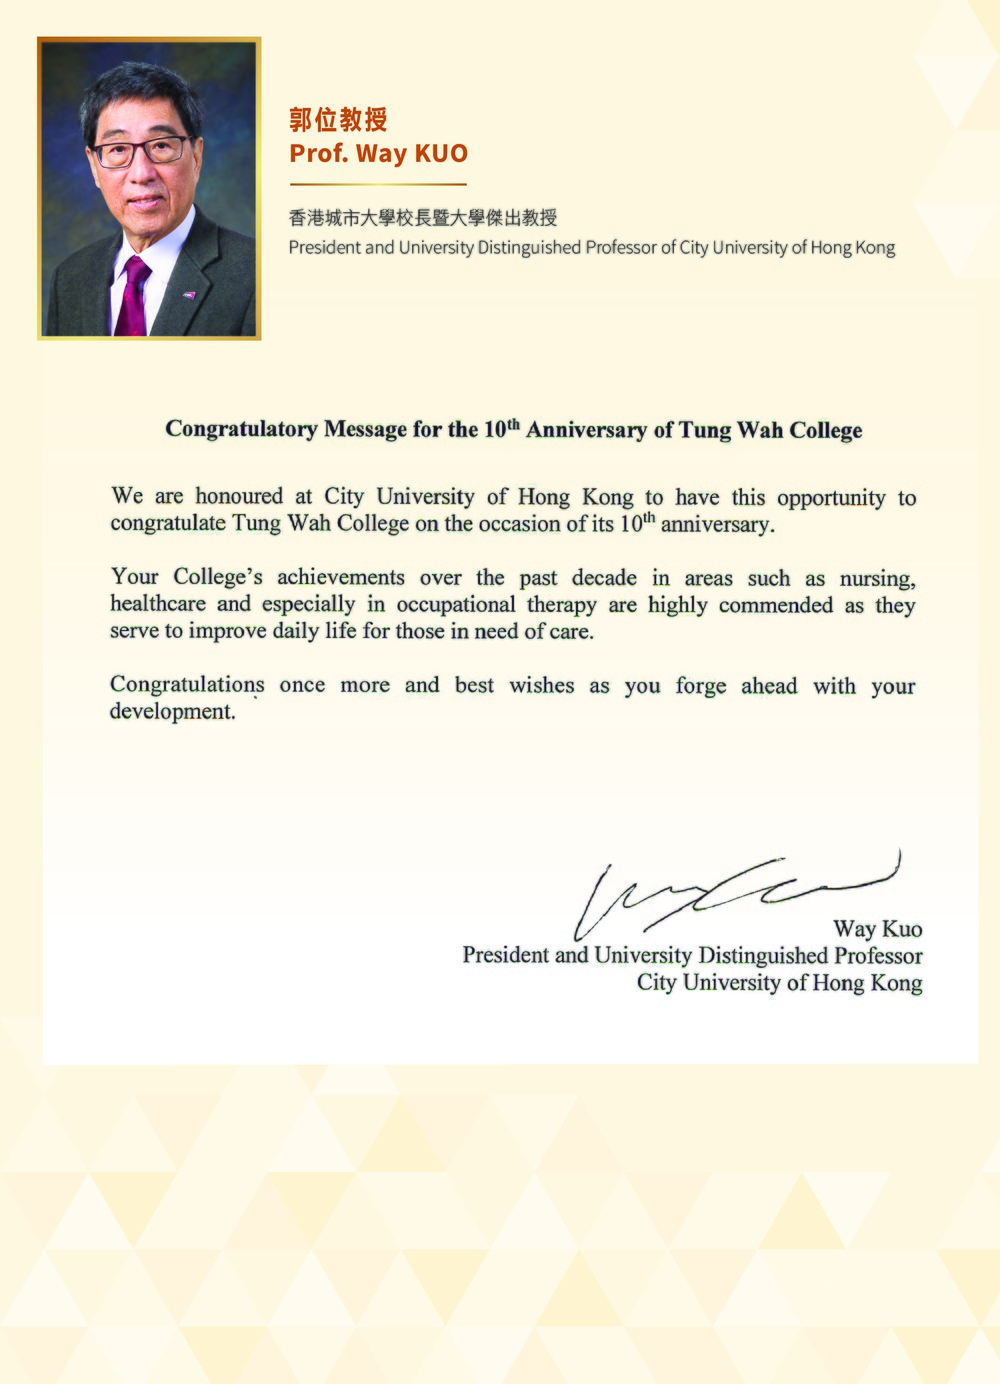 President and University Distinguished Professor of City University of Hong Kong